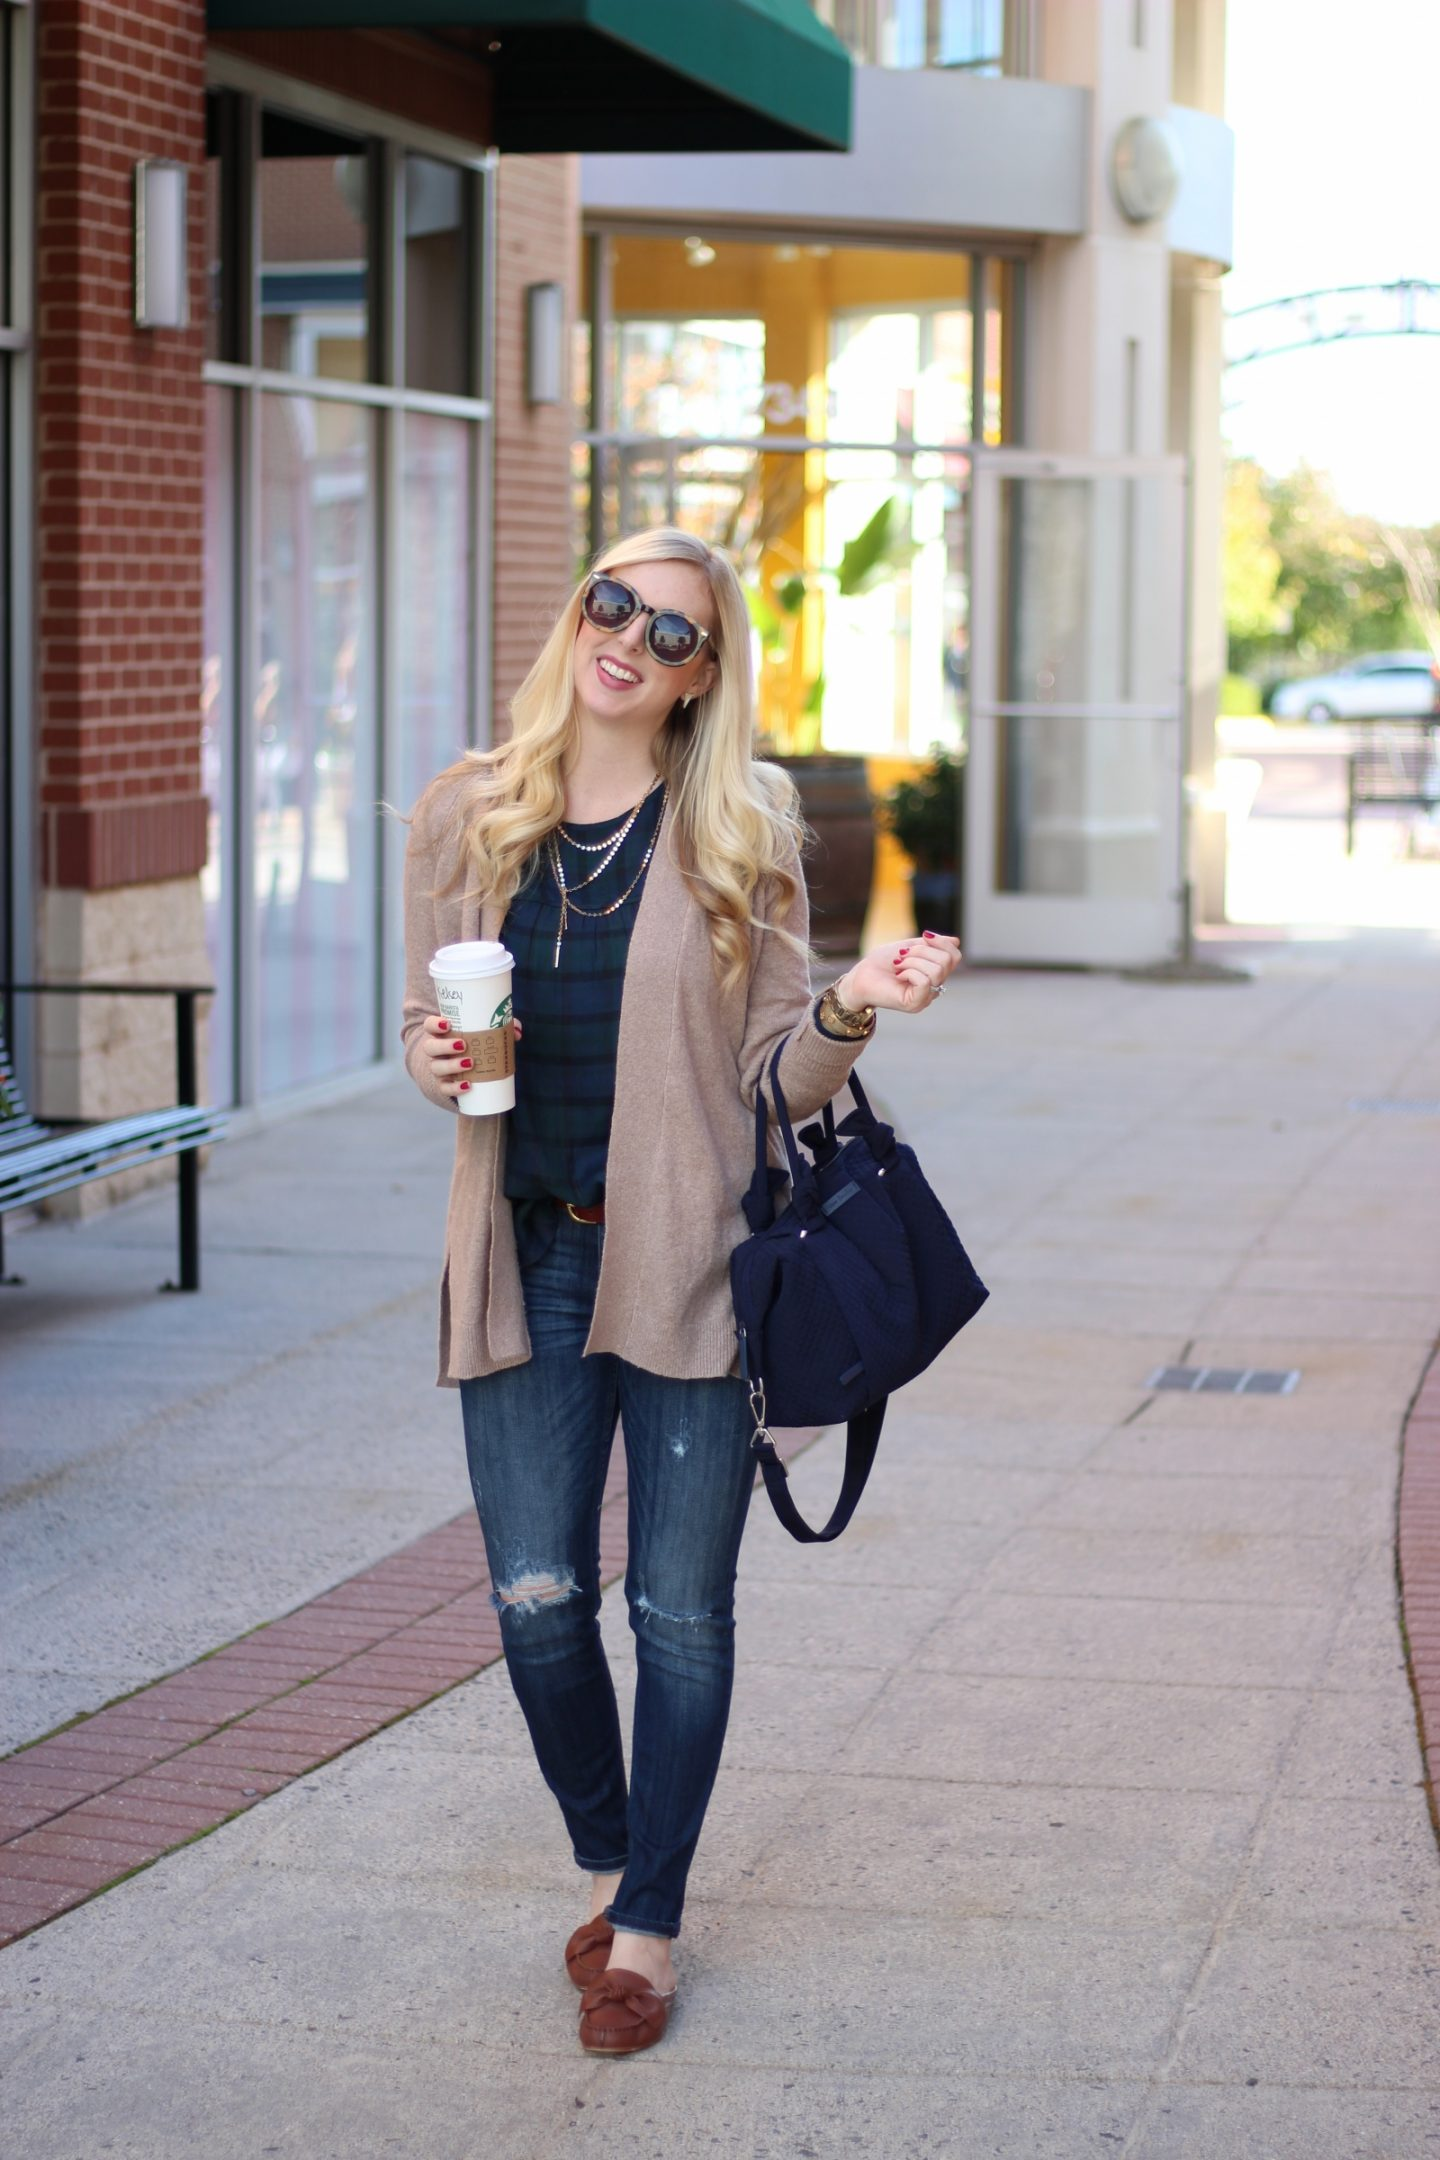 Blackwatch Plaid with a Cozy Cardigan by Washington DC fashion blogger Styled Blonde